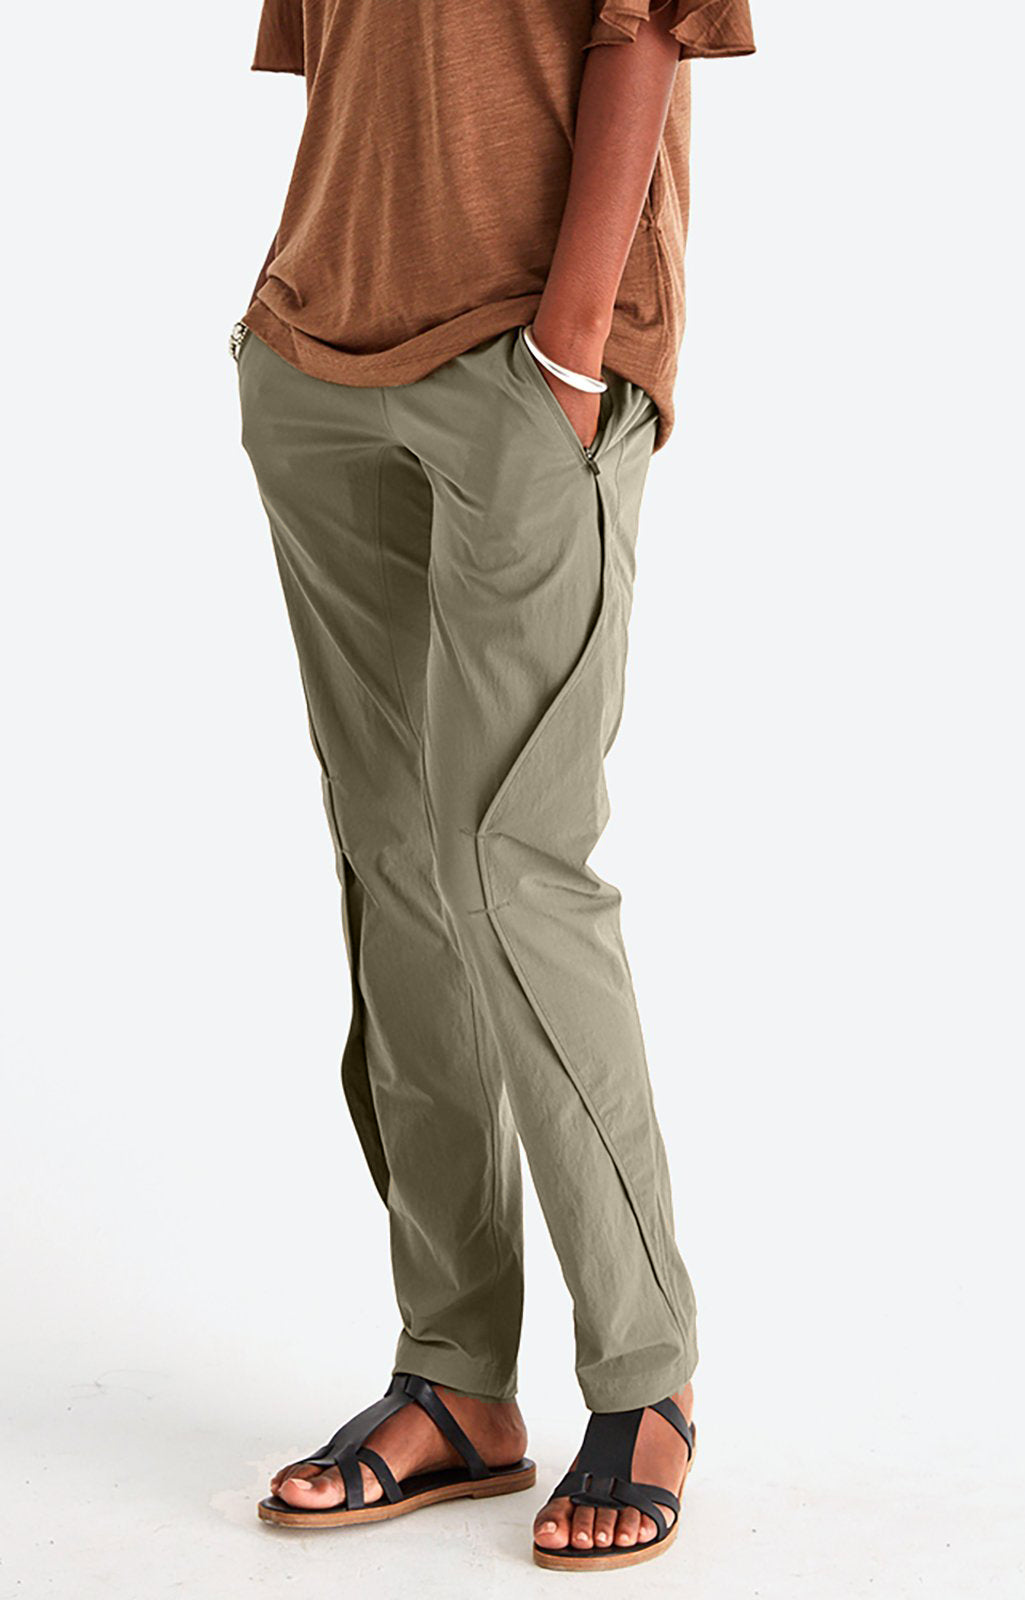 Purity - Meticulous Craftsmanship Pants in Khaki